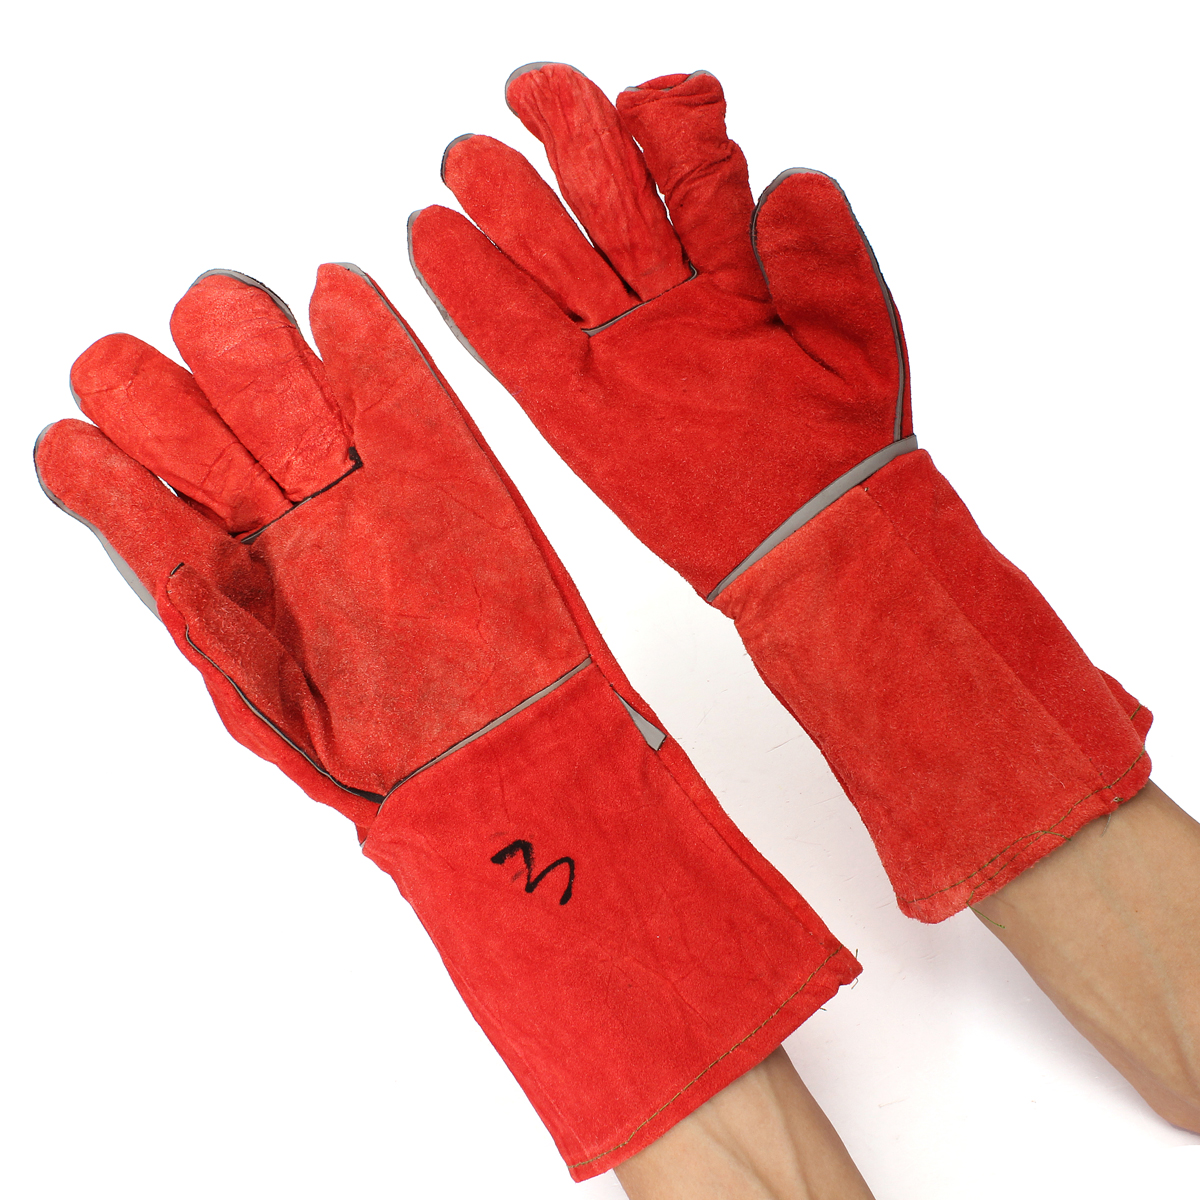 Welding Gloves Cowhide Electric Leather Welding Protective Gloves